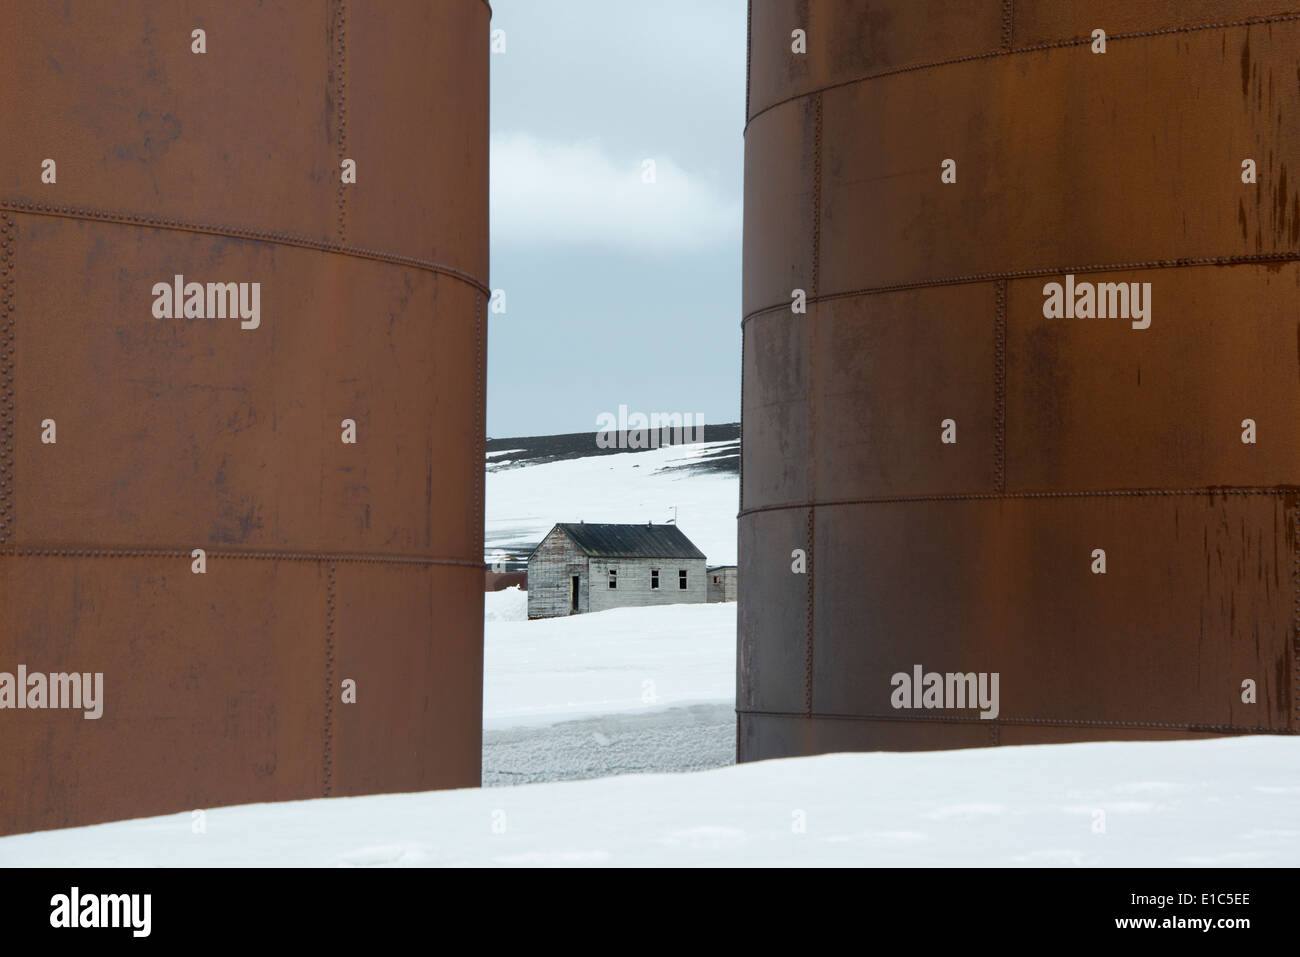 The tall sides of rusting metal whale oil tanks at the former whaling station on Deception Island. - Stock Image